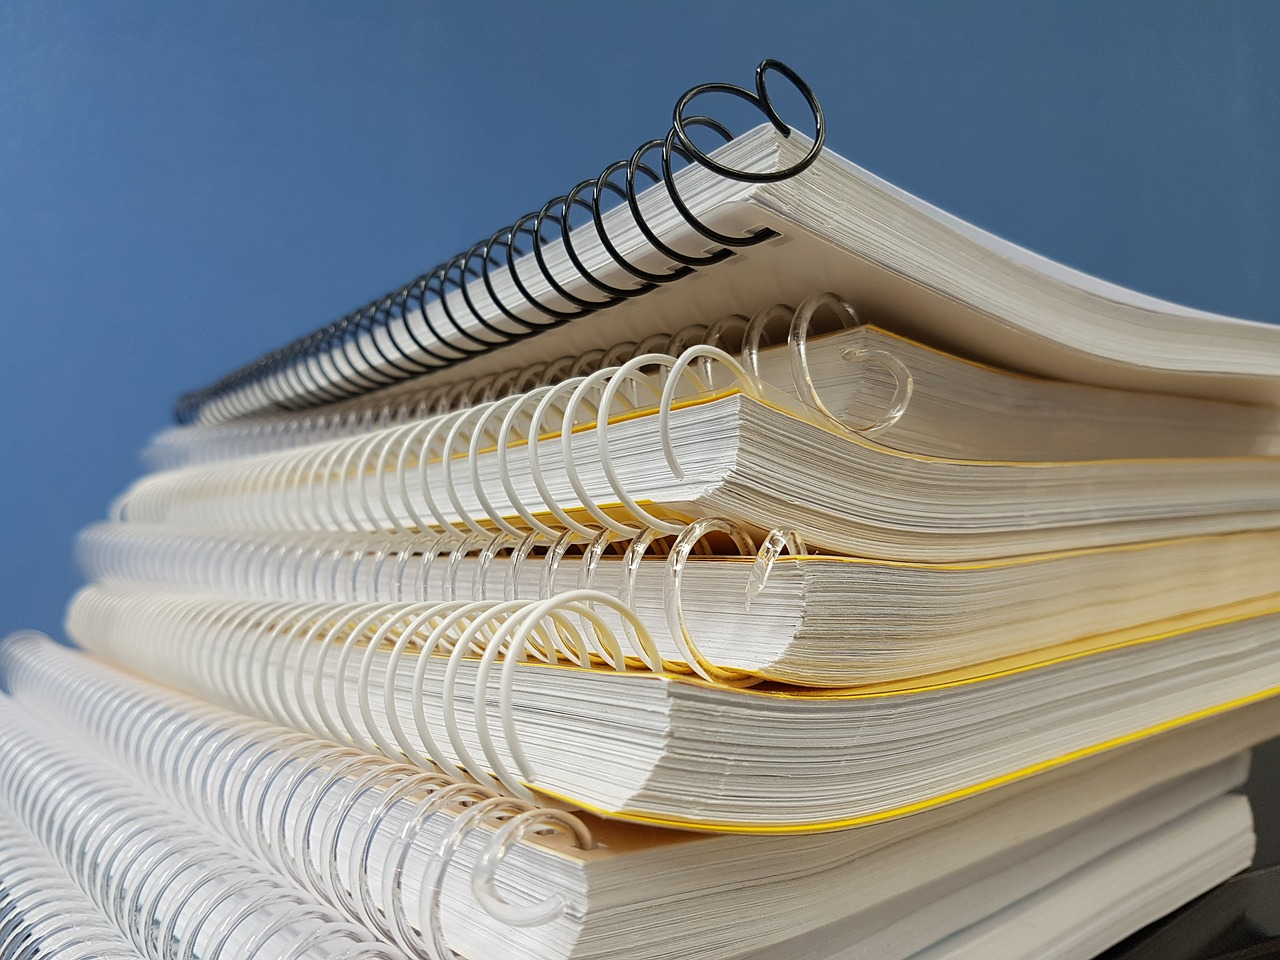 Image of several paper notebooks stacked up.